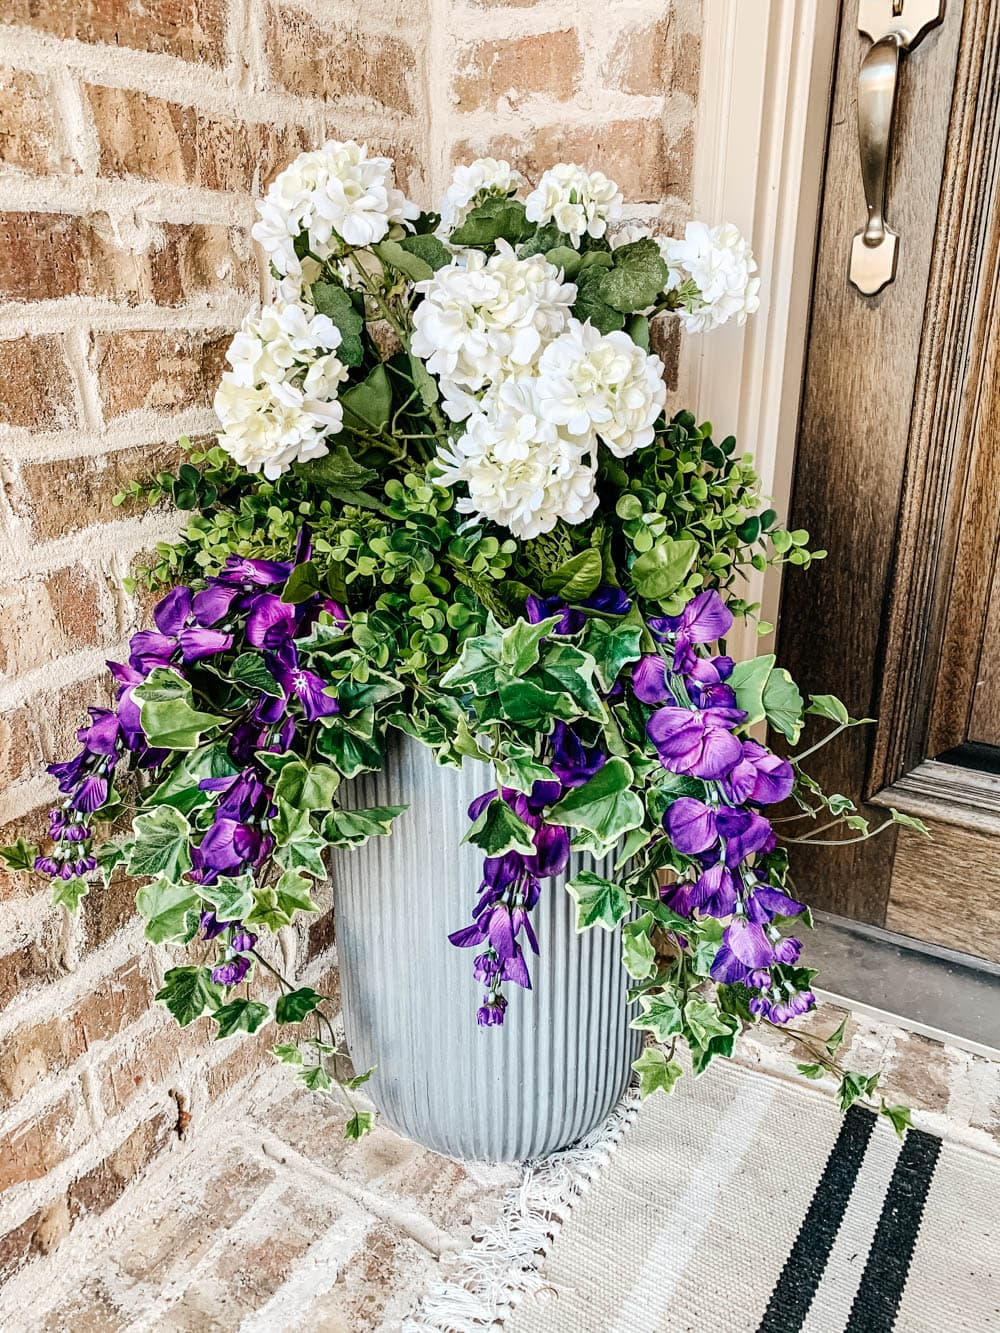 This planter is filled with UV protected artificial flowers and plants to create a stunning display. #ABlissfulNest #outdoorplanter #outdoordecorating